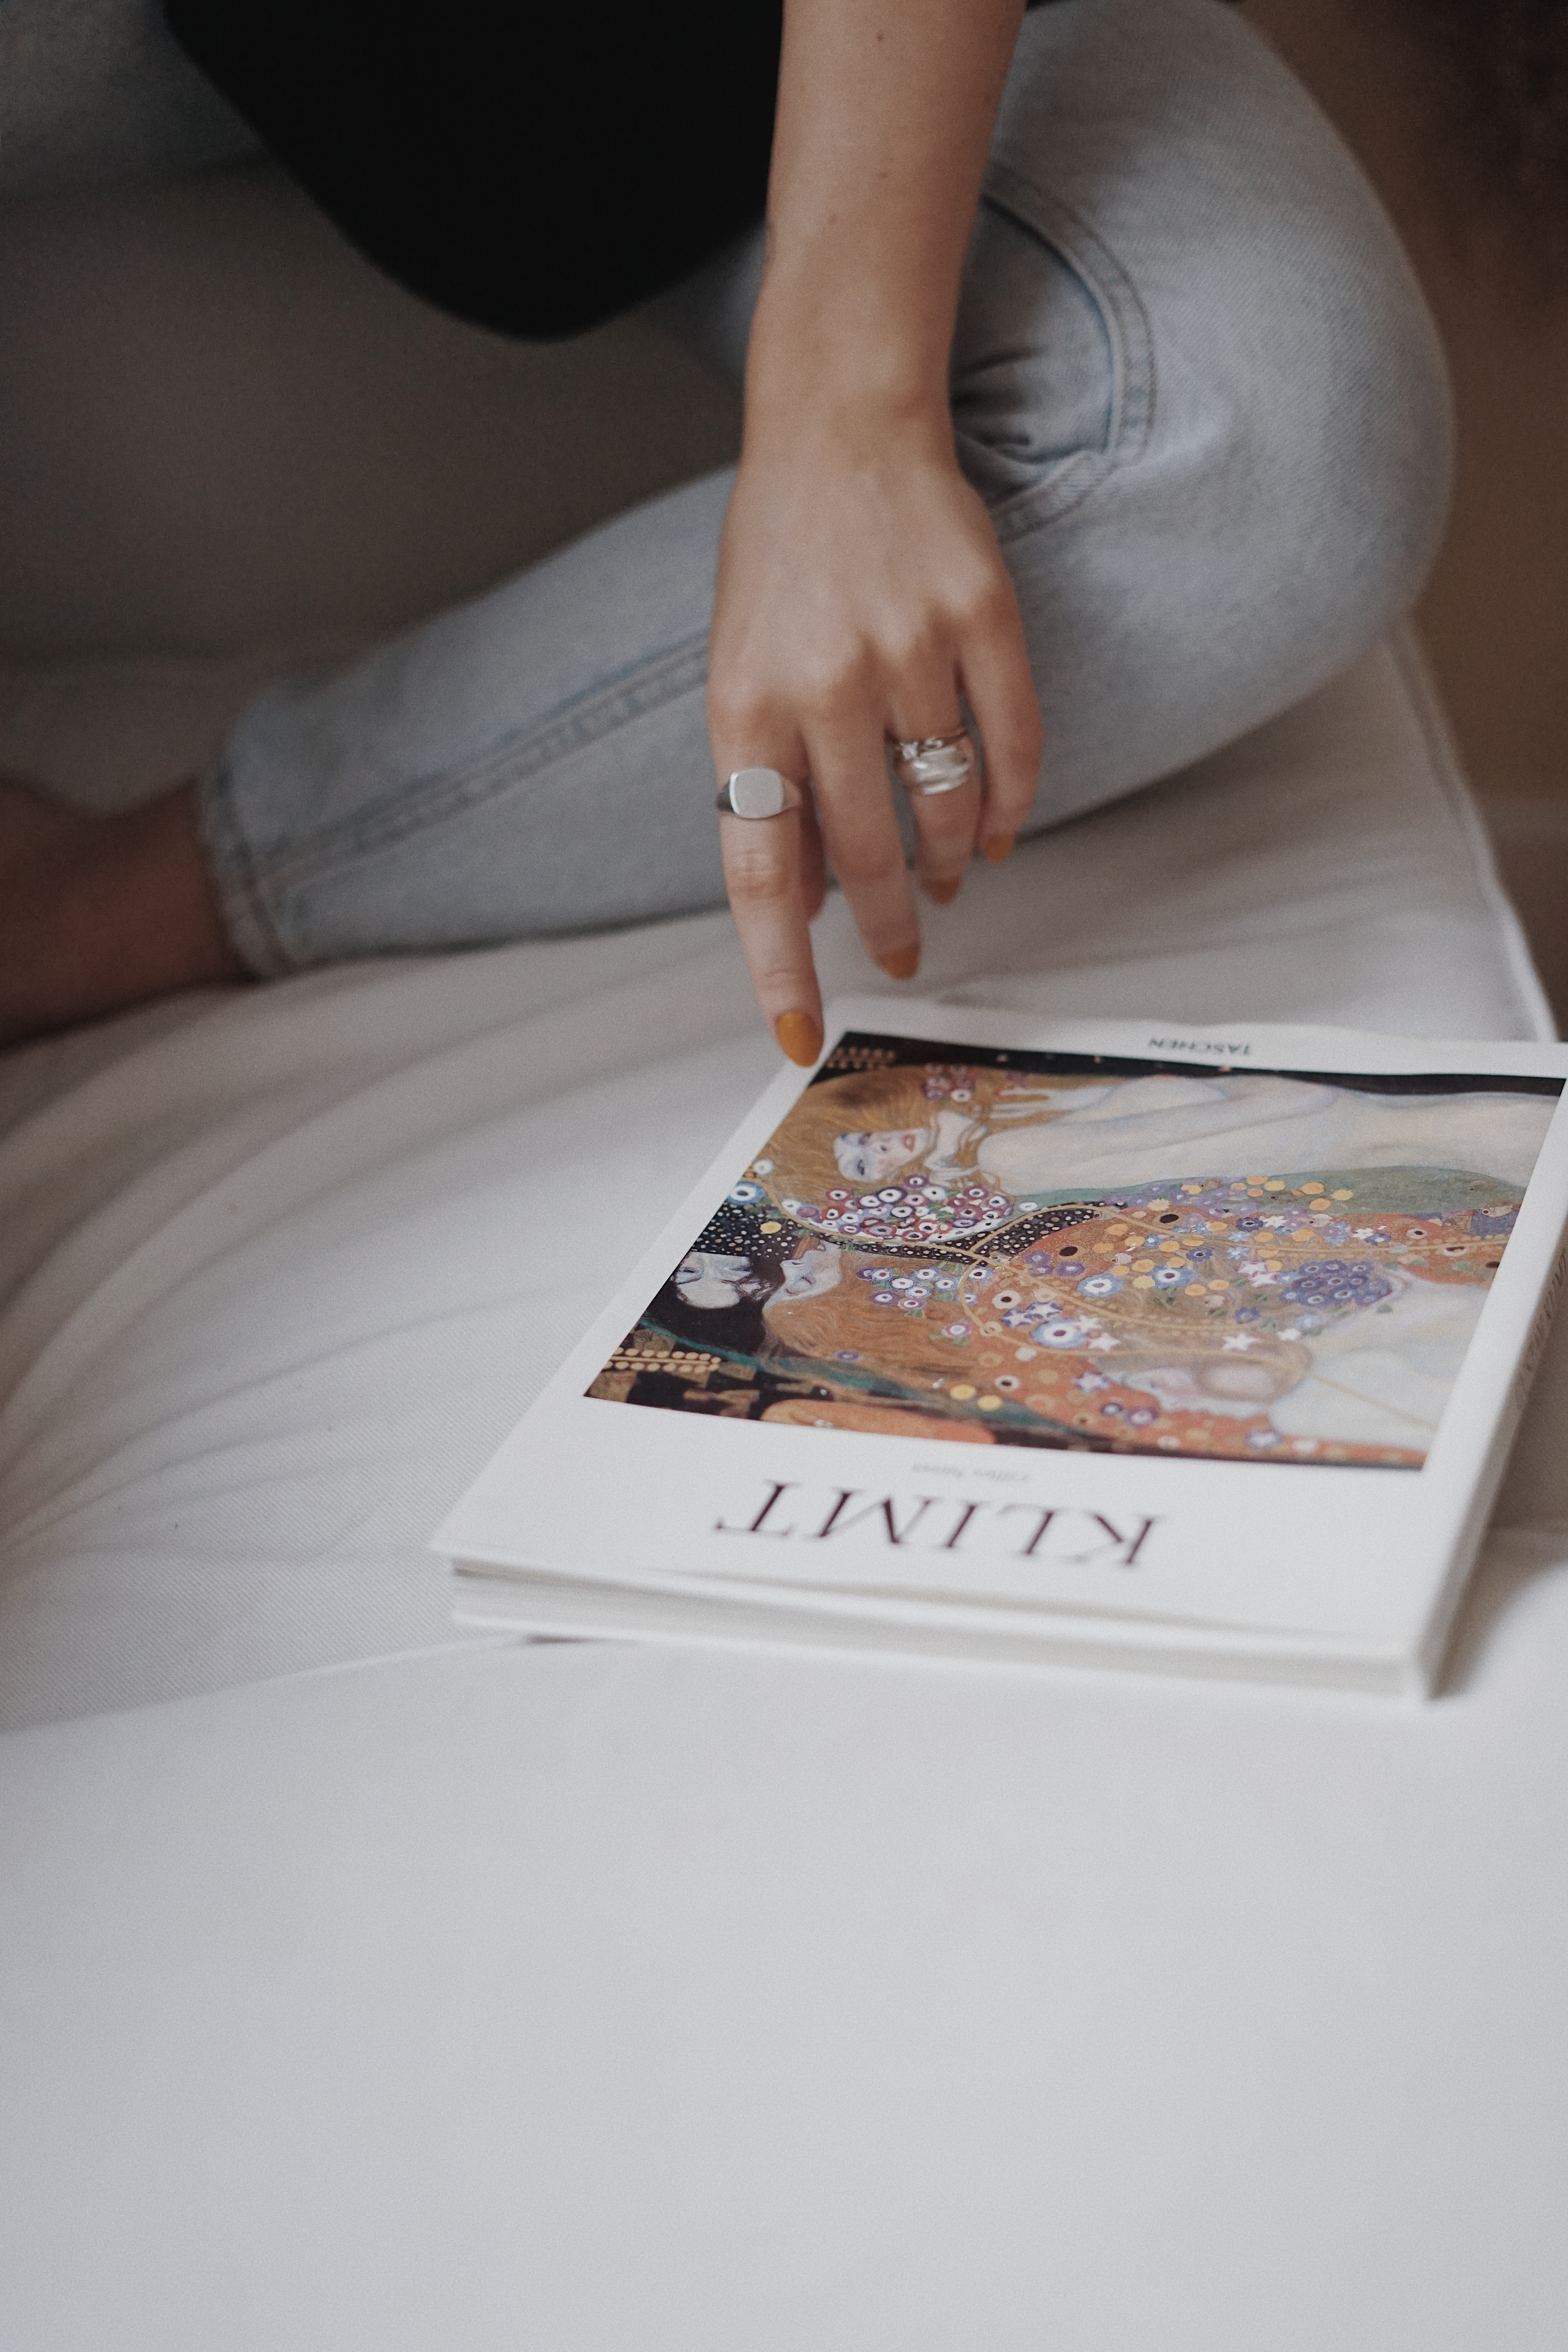 person-in-gray-denim-jeans-holding-white-and-brown-book